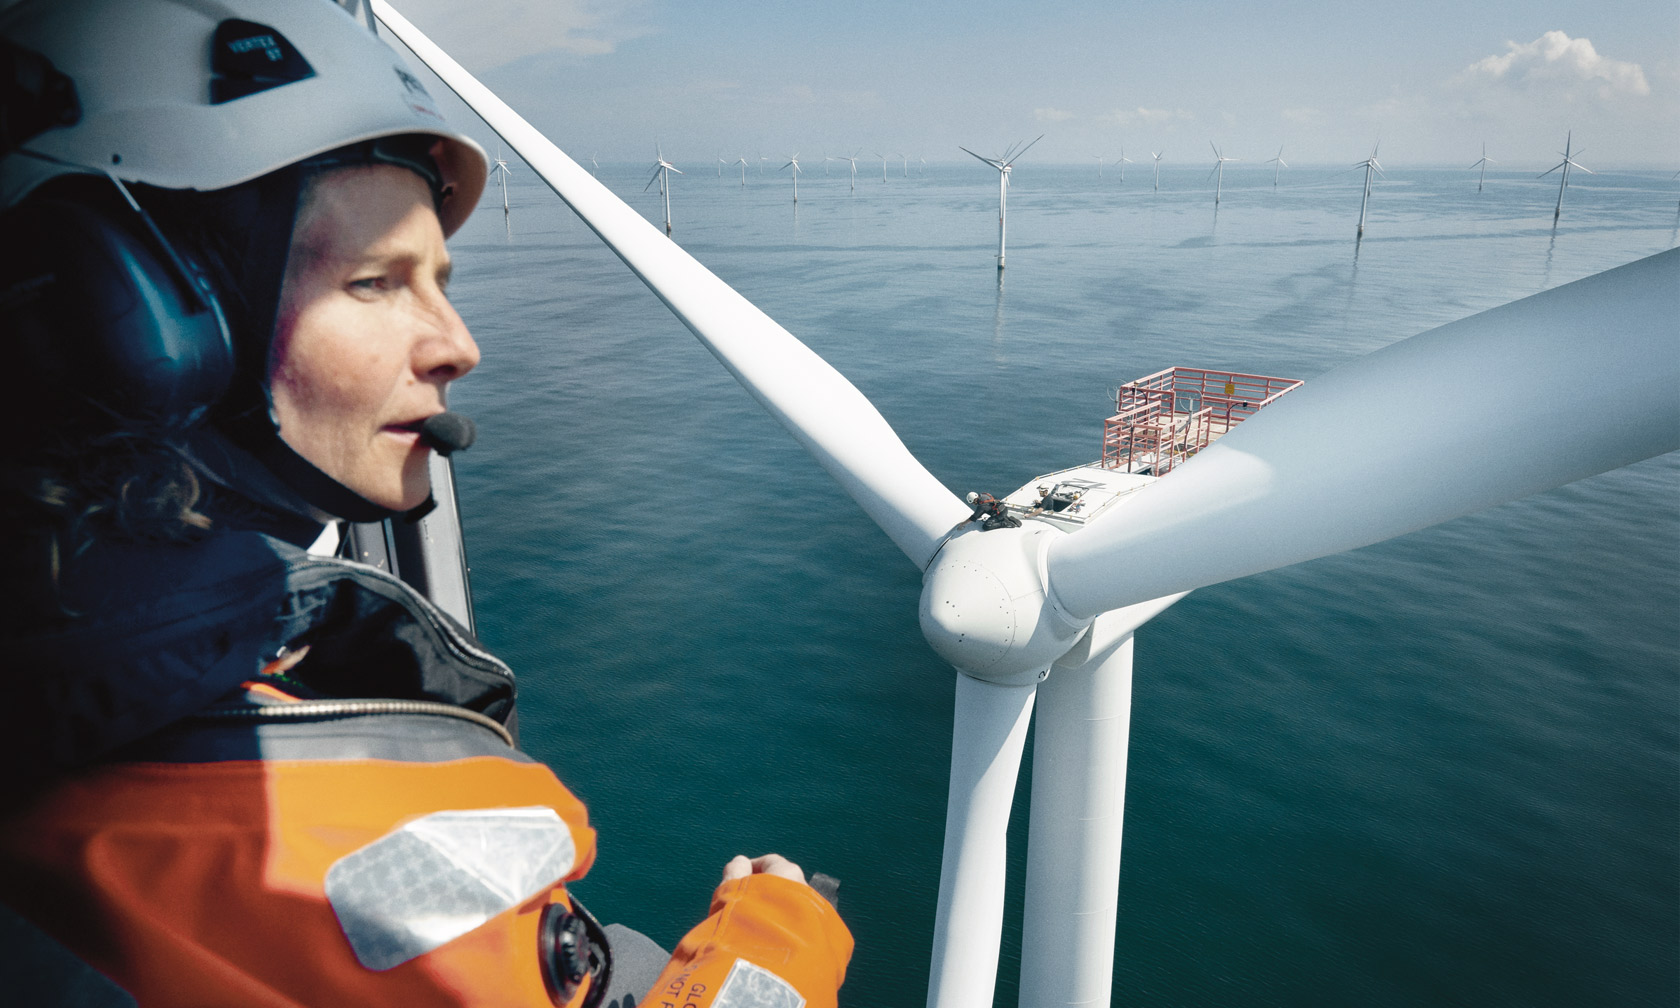 Woman in helicopter looking down on turbines at Horns Rev offshore wind farm